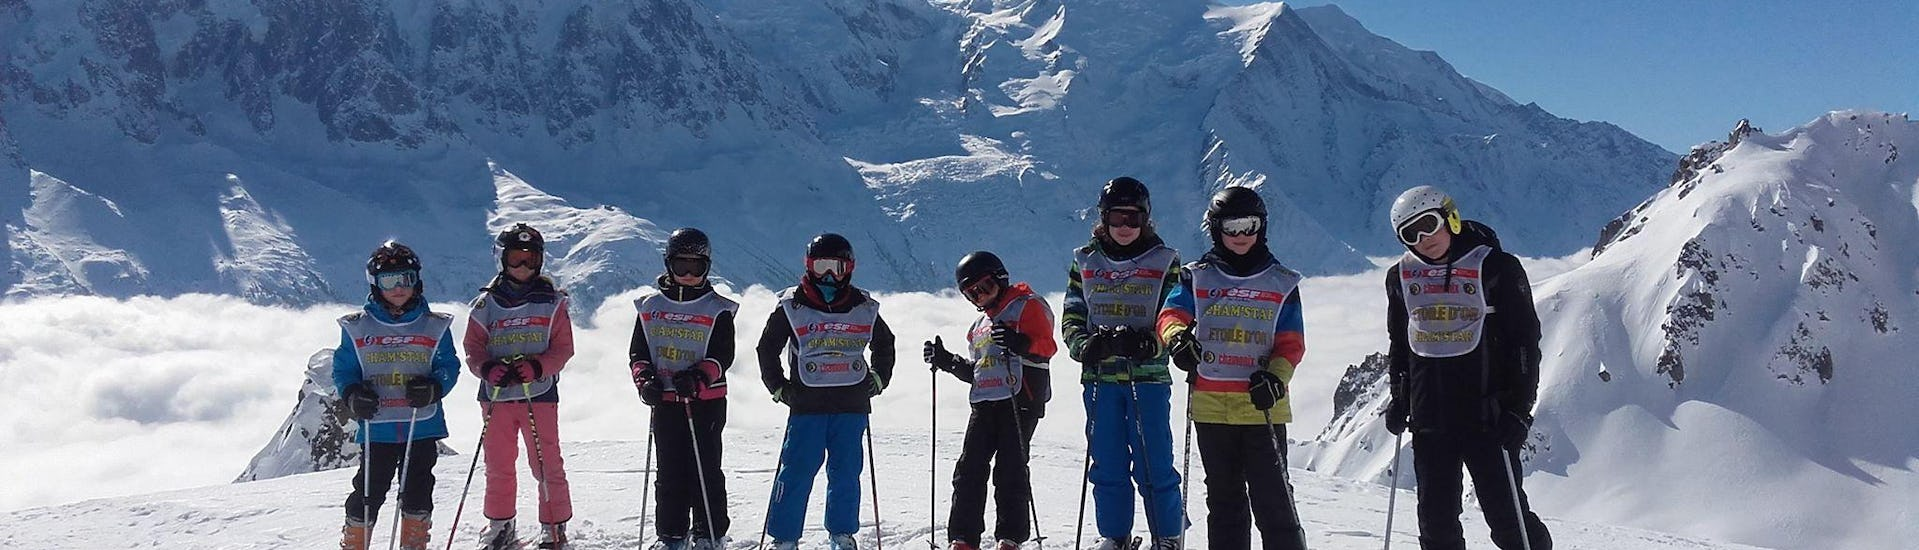 kids-ski-lessons-ski-star-5-12-years-low-season-esf-chamonix-hero